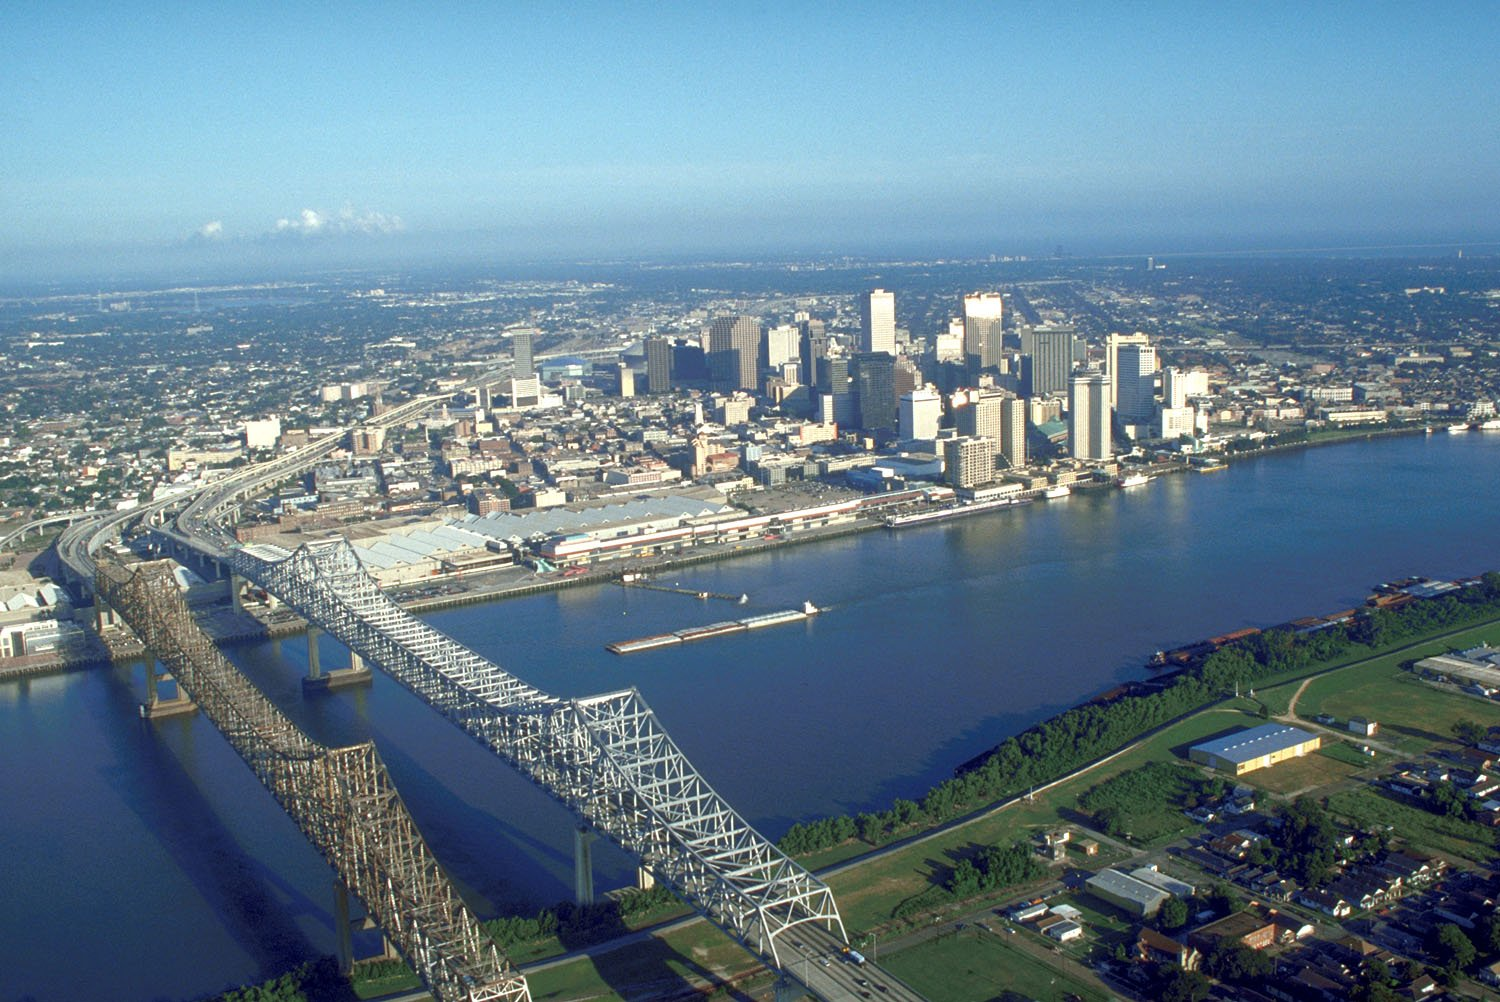 ProClean Services pressure washing professional cleaning services New Orleans LA